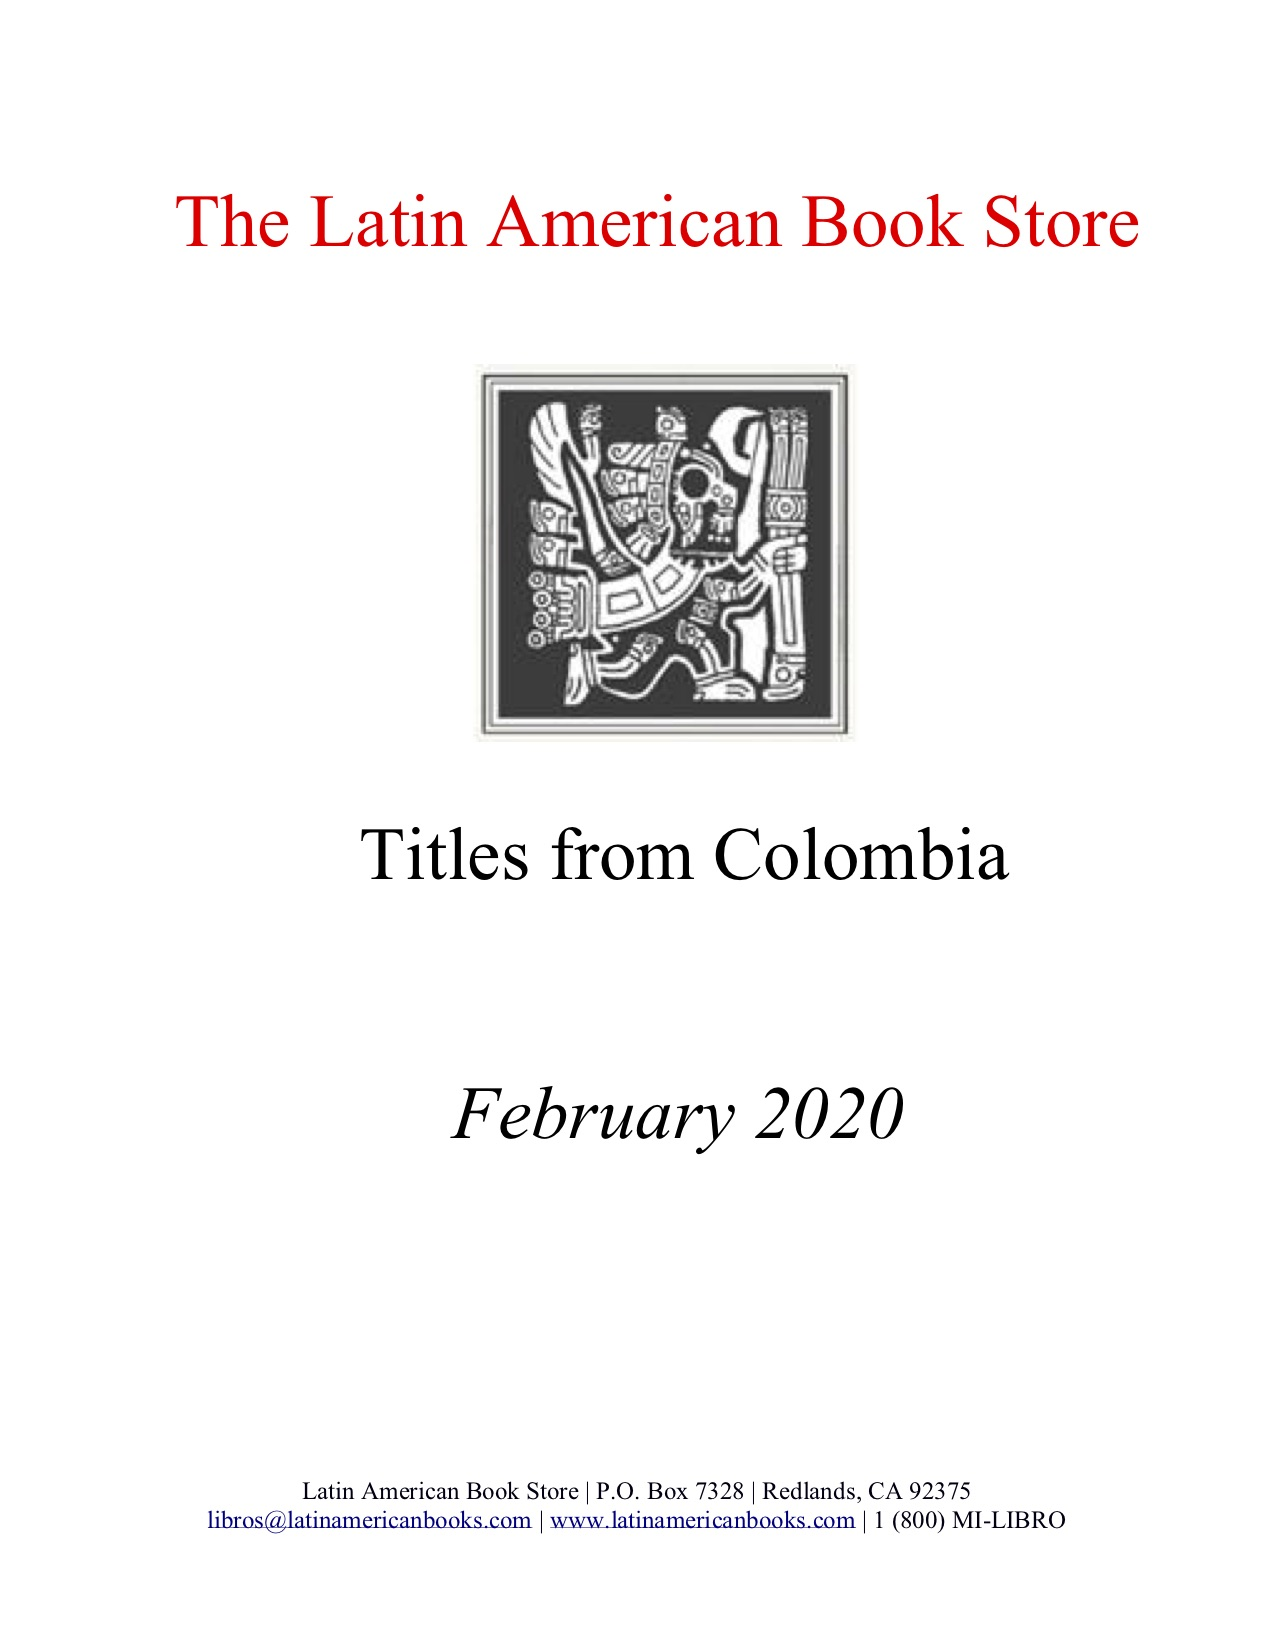 Colombian Titles -- March 2020